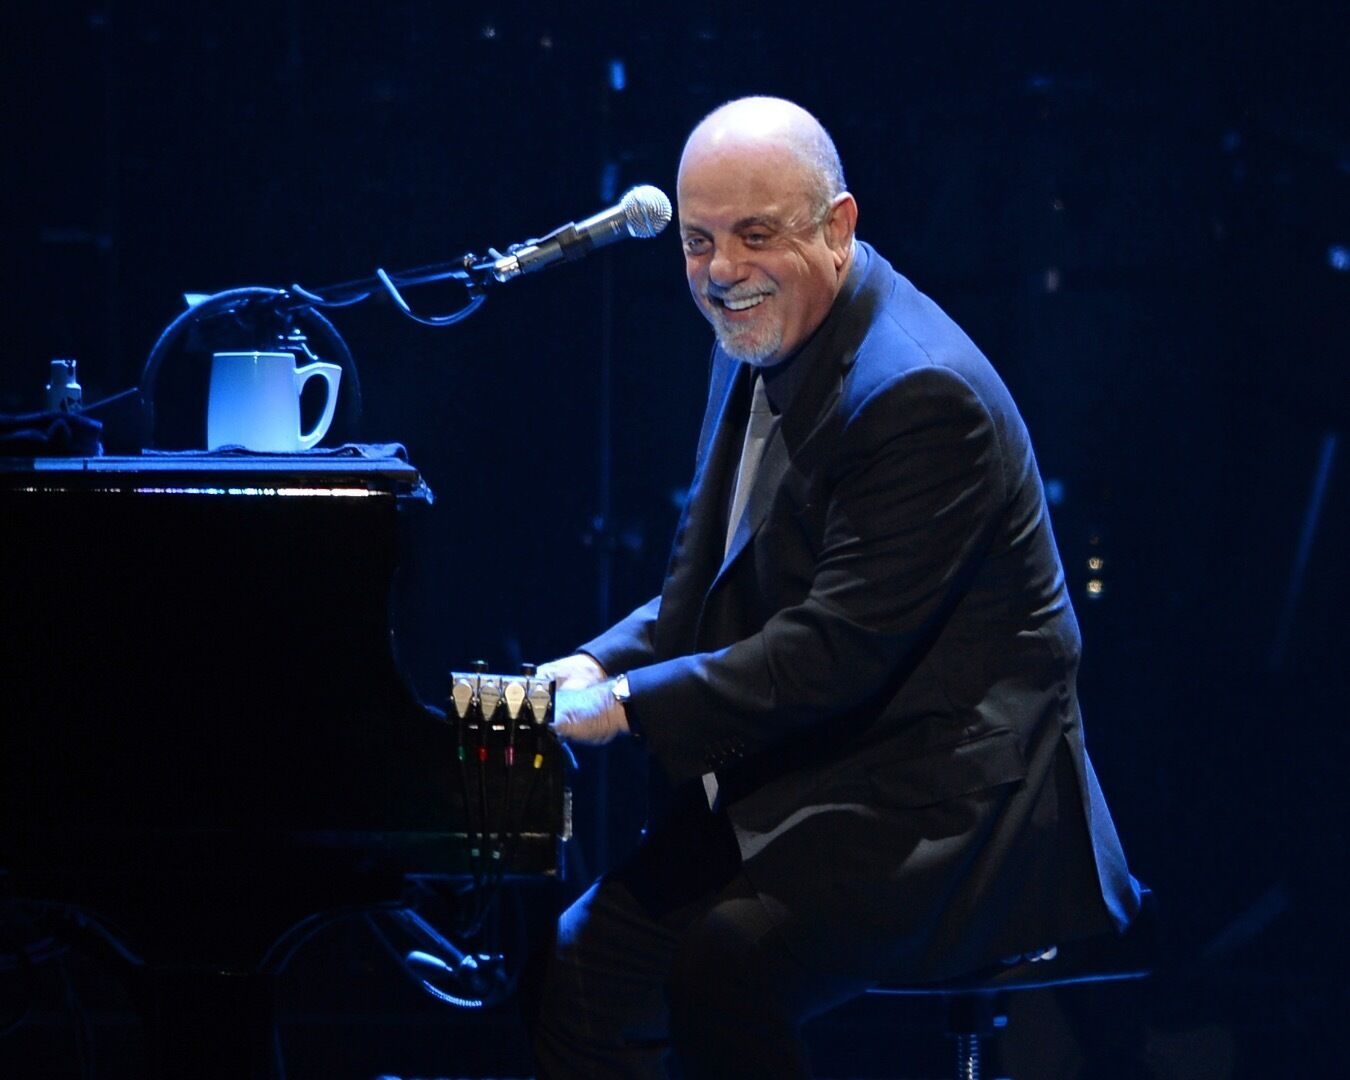 Billy Joel Tickets - Billy Joel Tour Dates on StubHub!